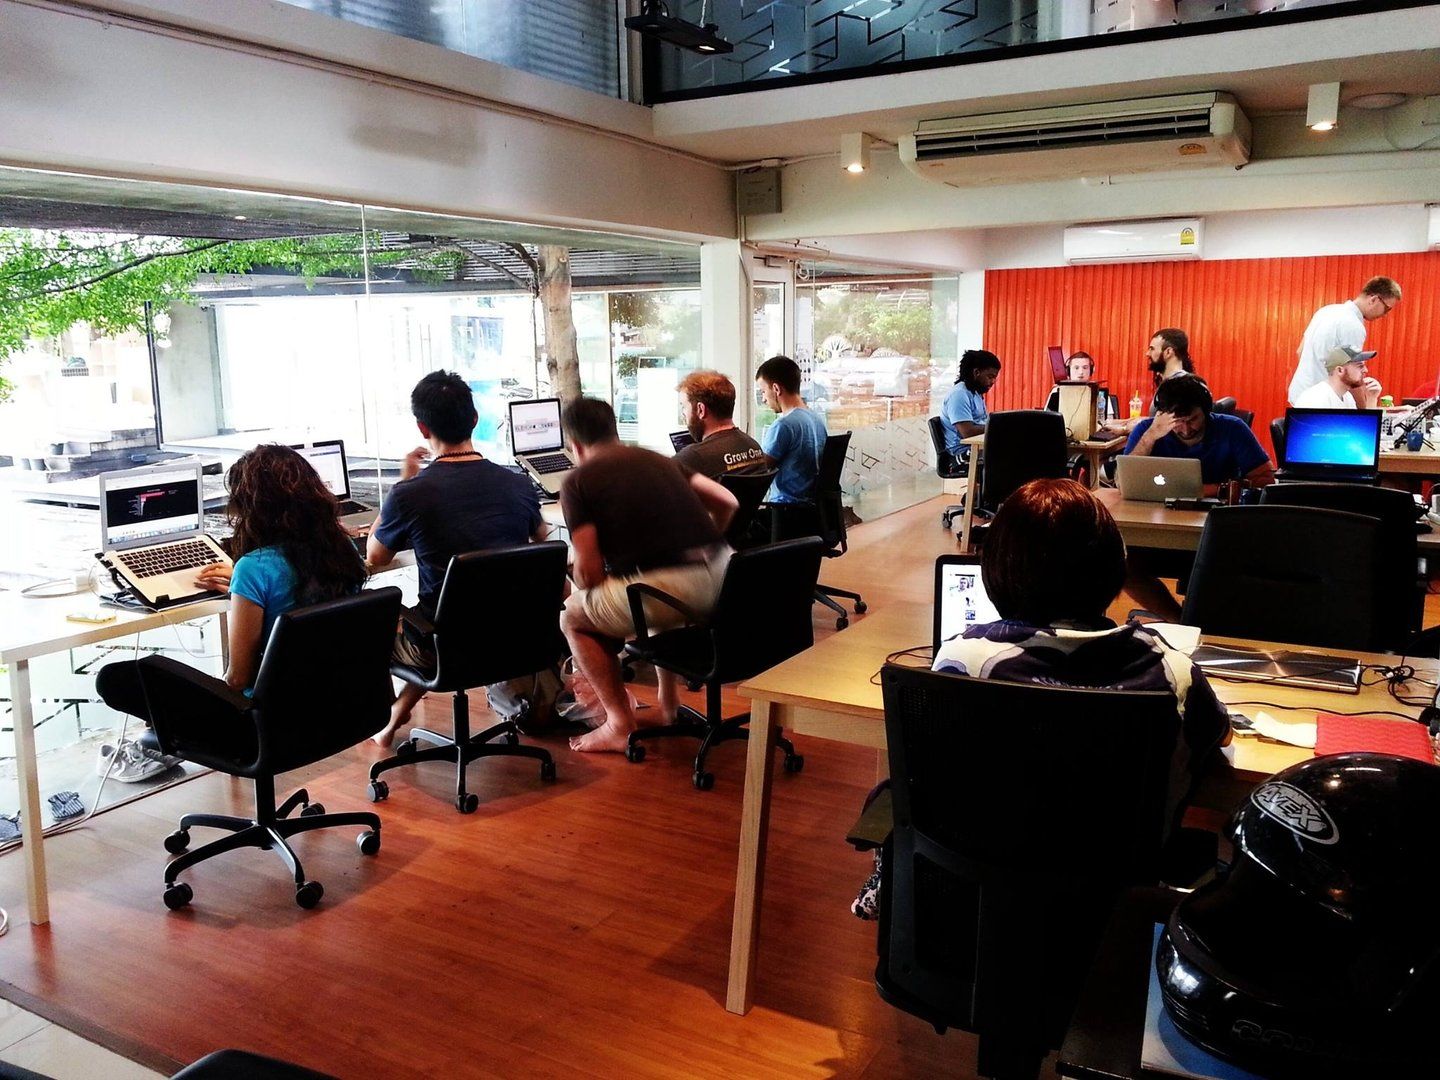 A Coworking Space in Chiang Mai, a popular Digital Nomad destination. (source: coworksquare.com)